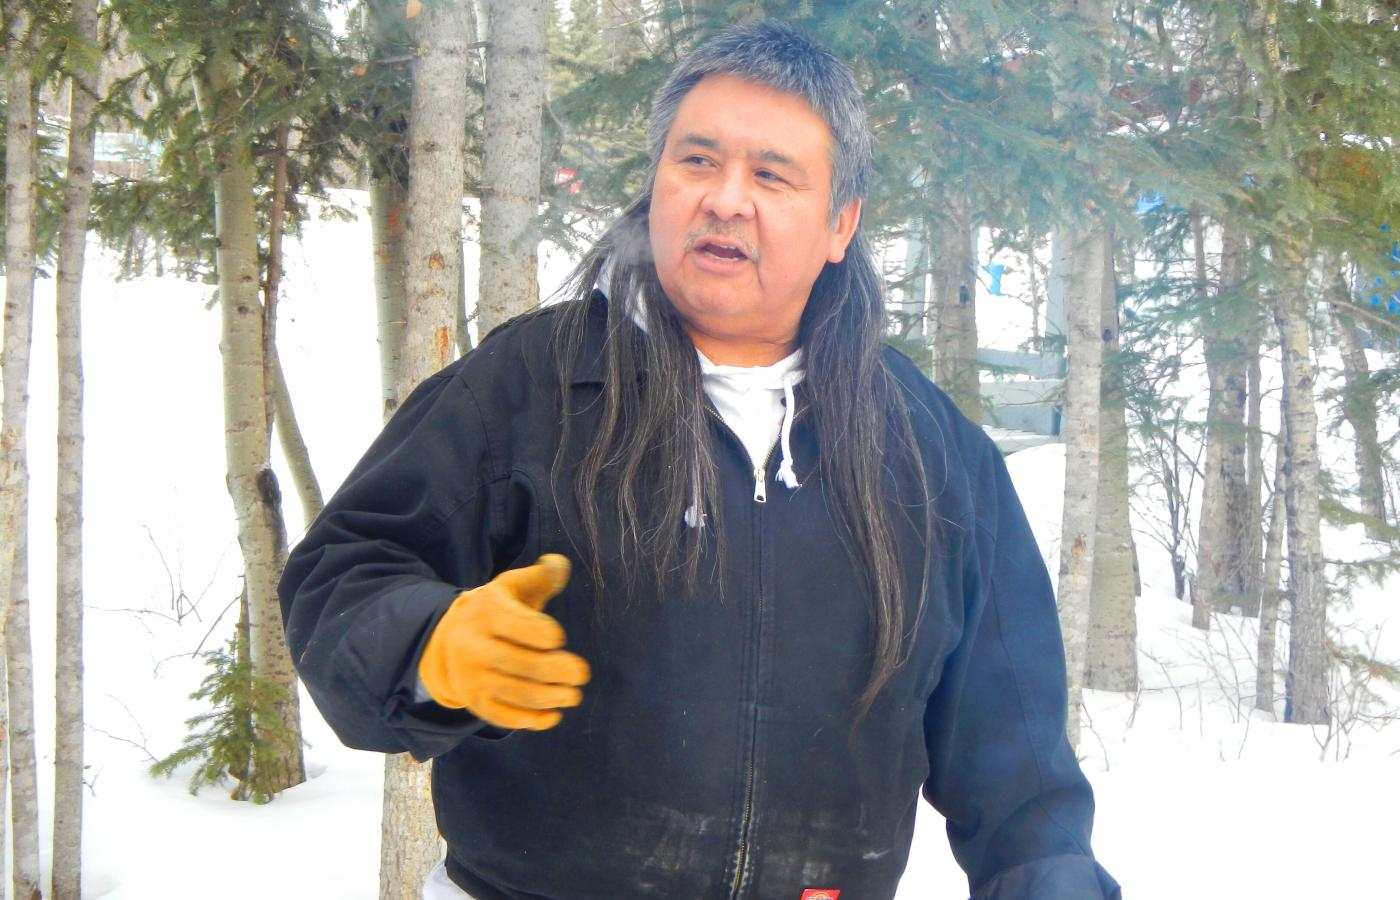 Dene elder shares a story around the campfire